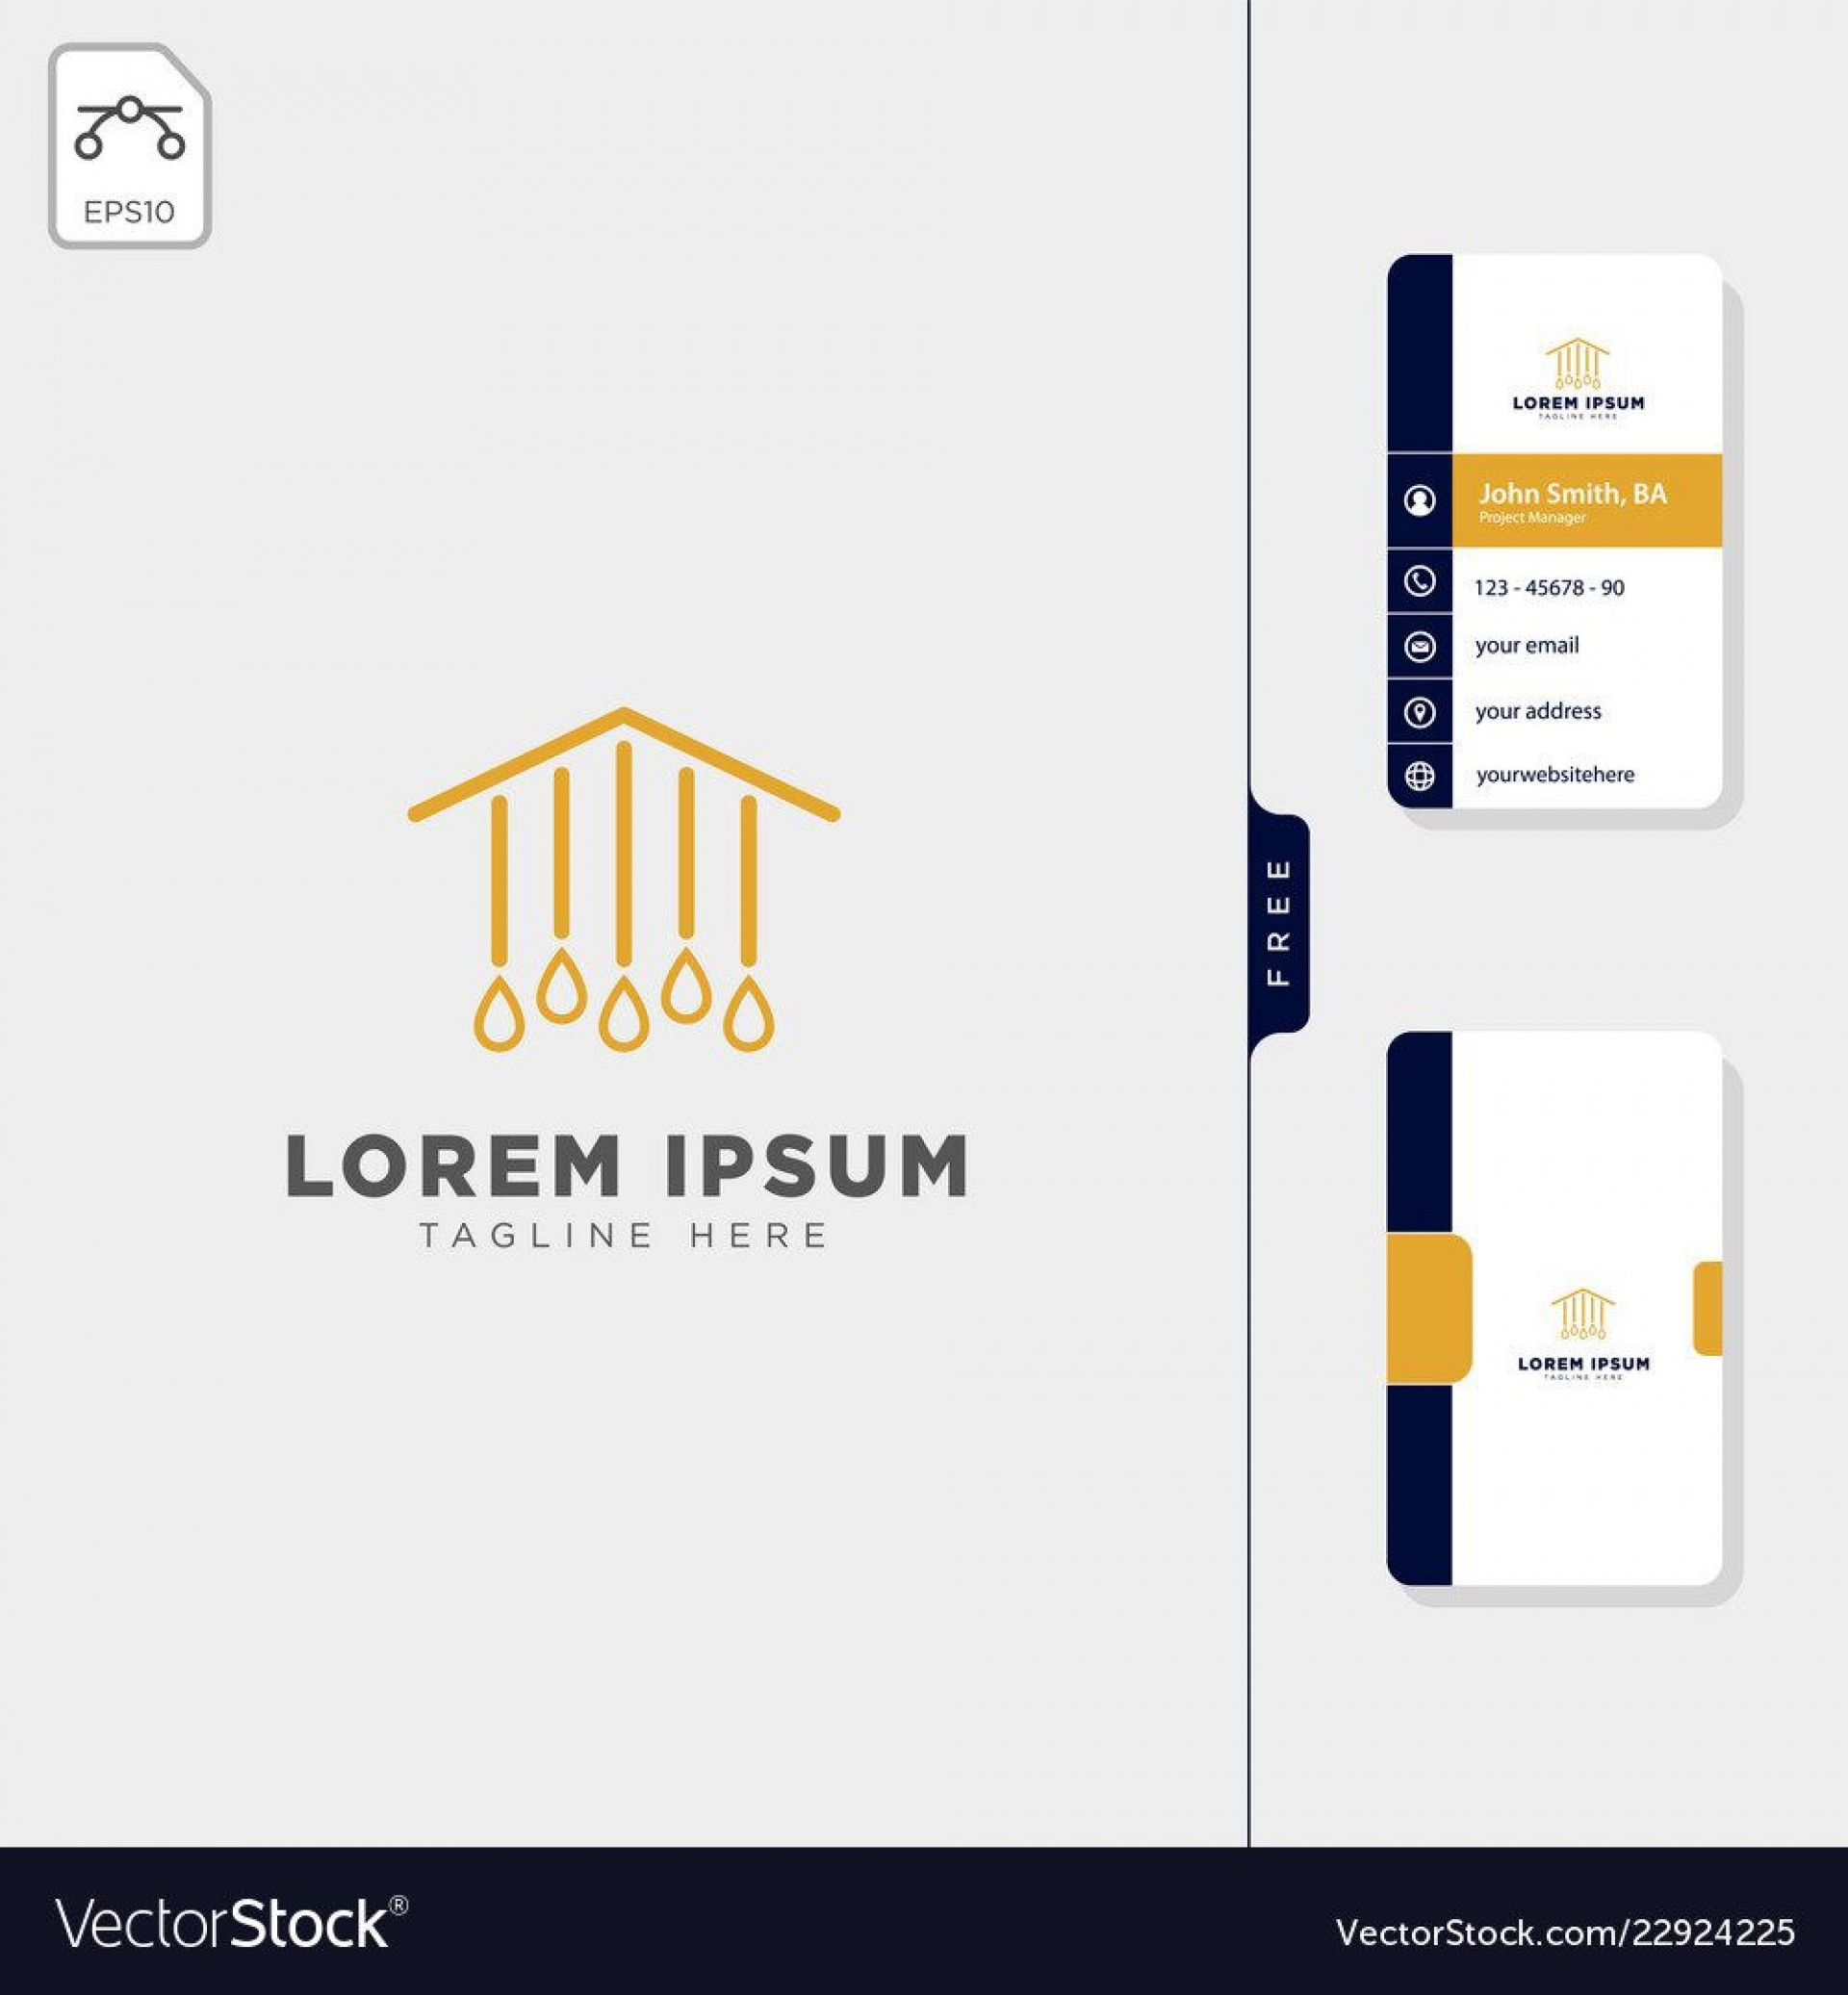 007 Unusual Free Busines Logo Template High Resolution  Templates Design Download Powerpoint1920